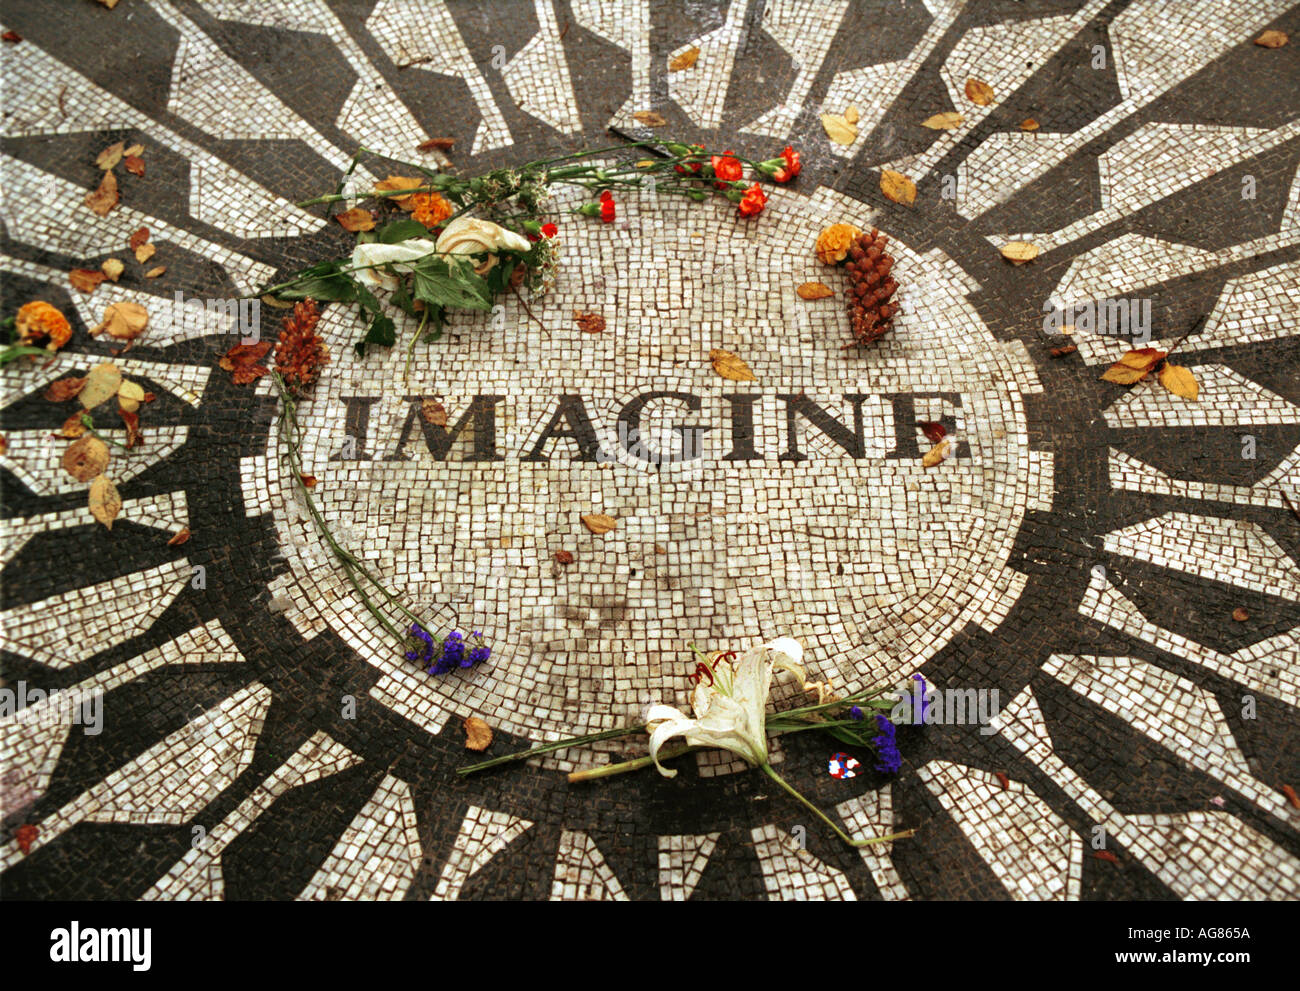 John Lennon Imagine Memorial Park Central New York City Estados Unidos Imagen De Stock